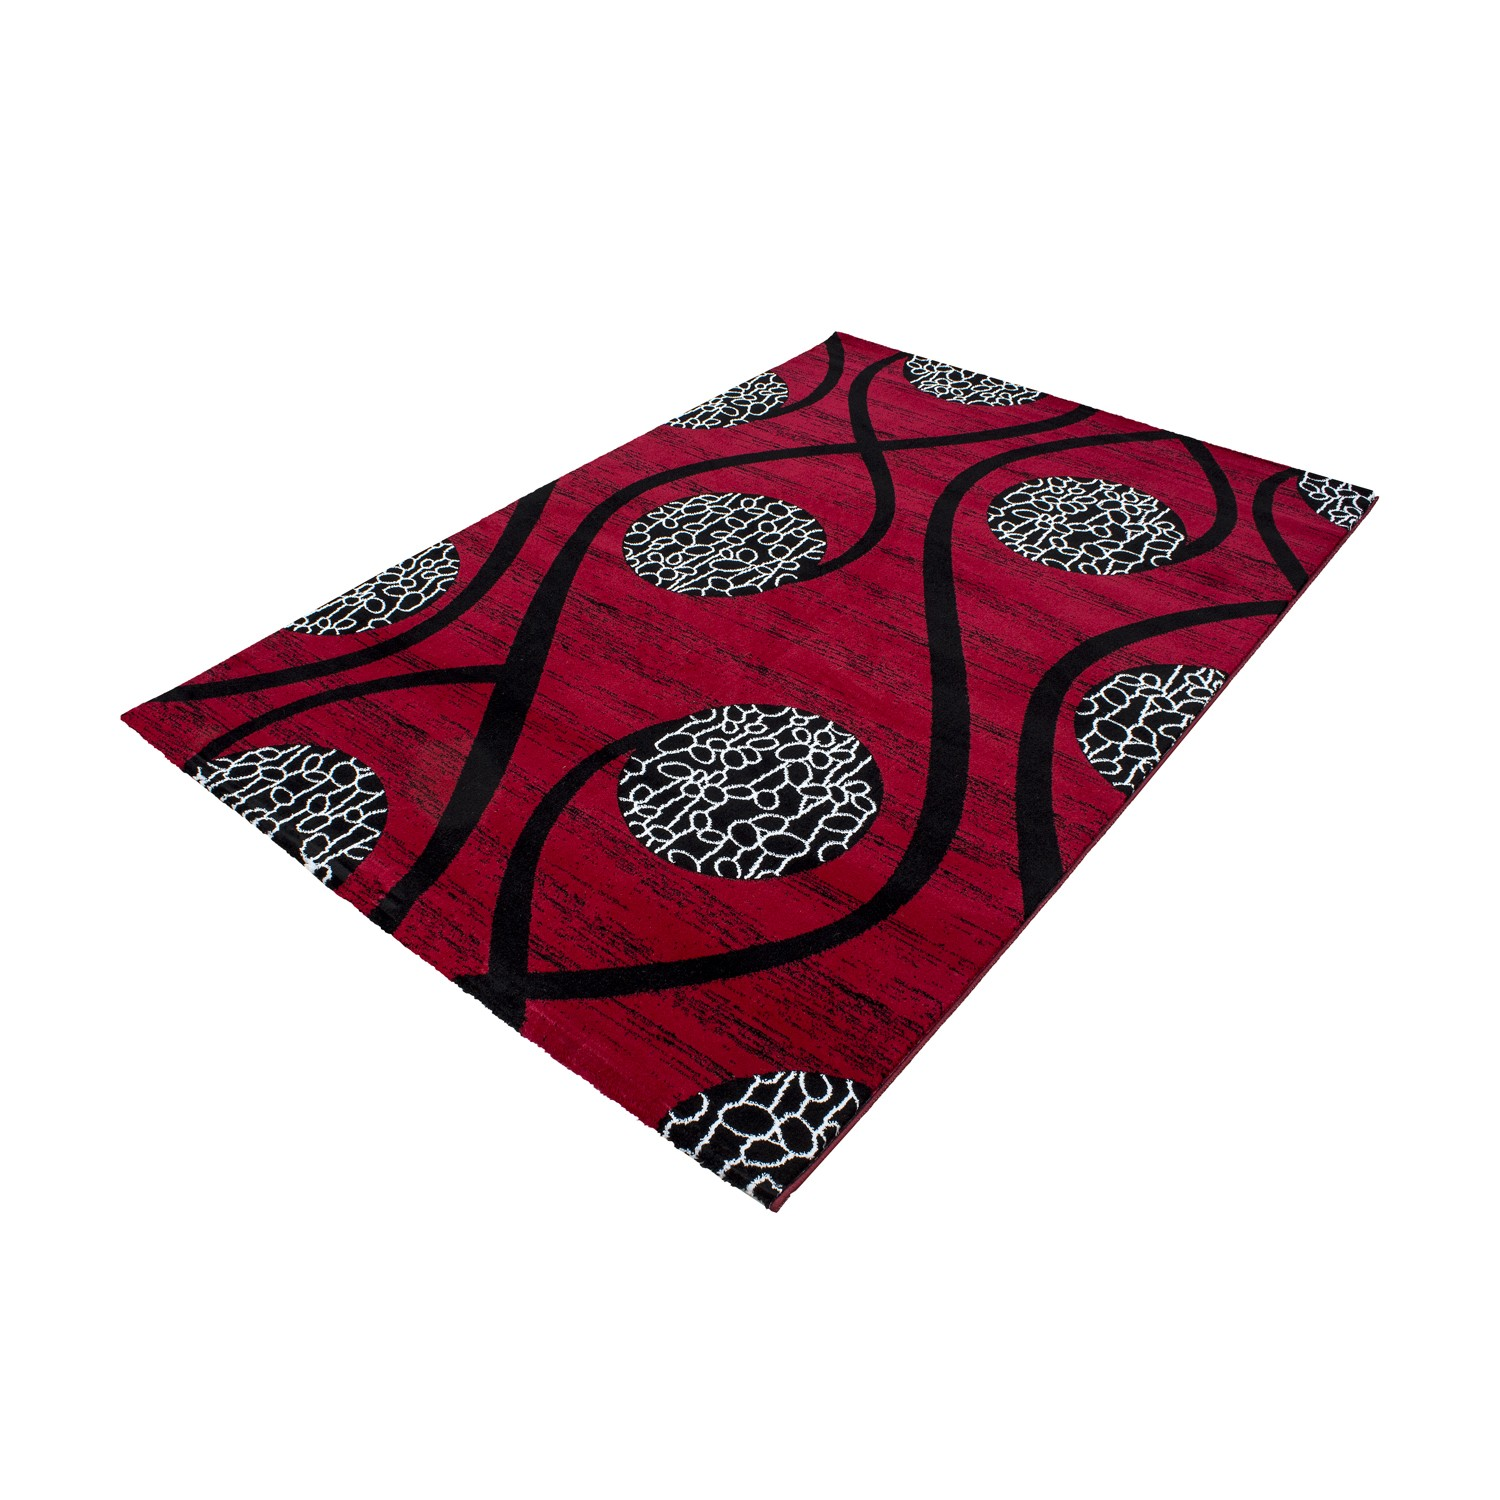 Tapis design moderne coloris rouge chic Tapis moderne design